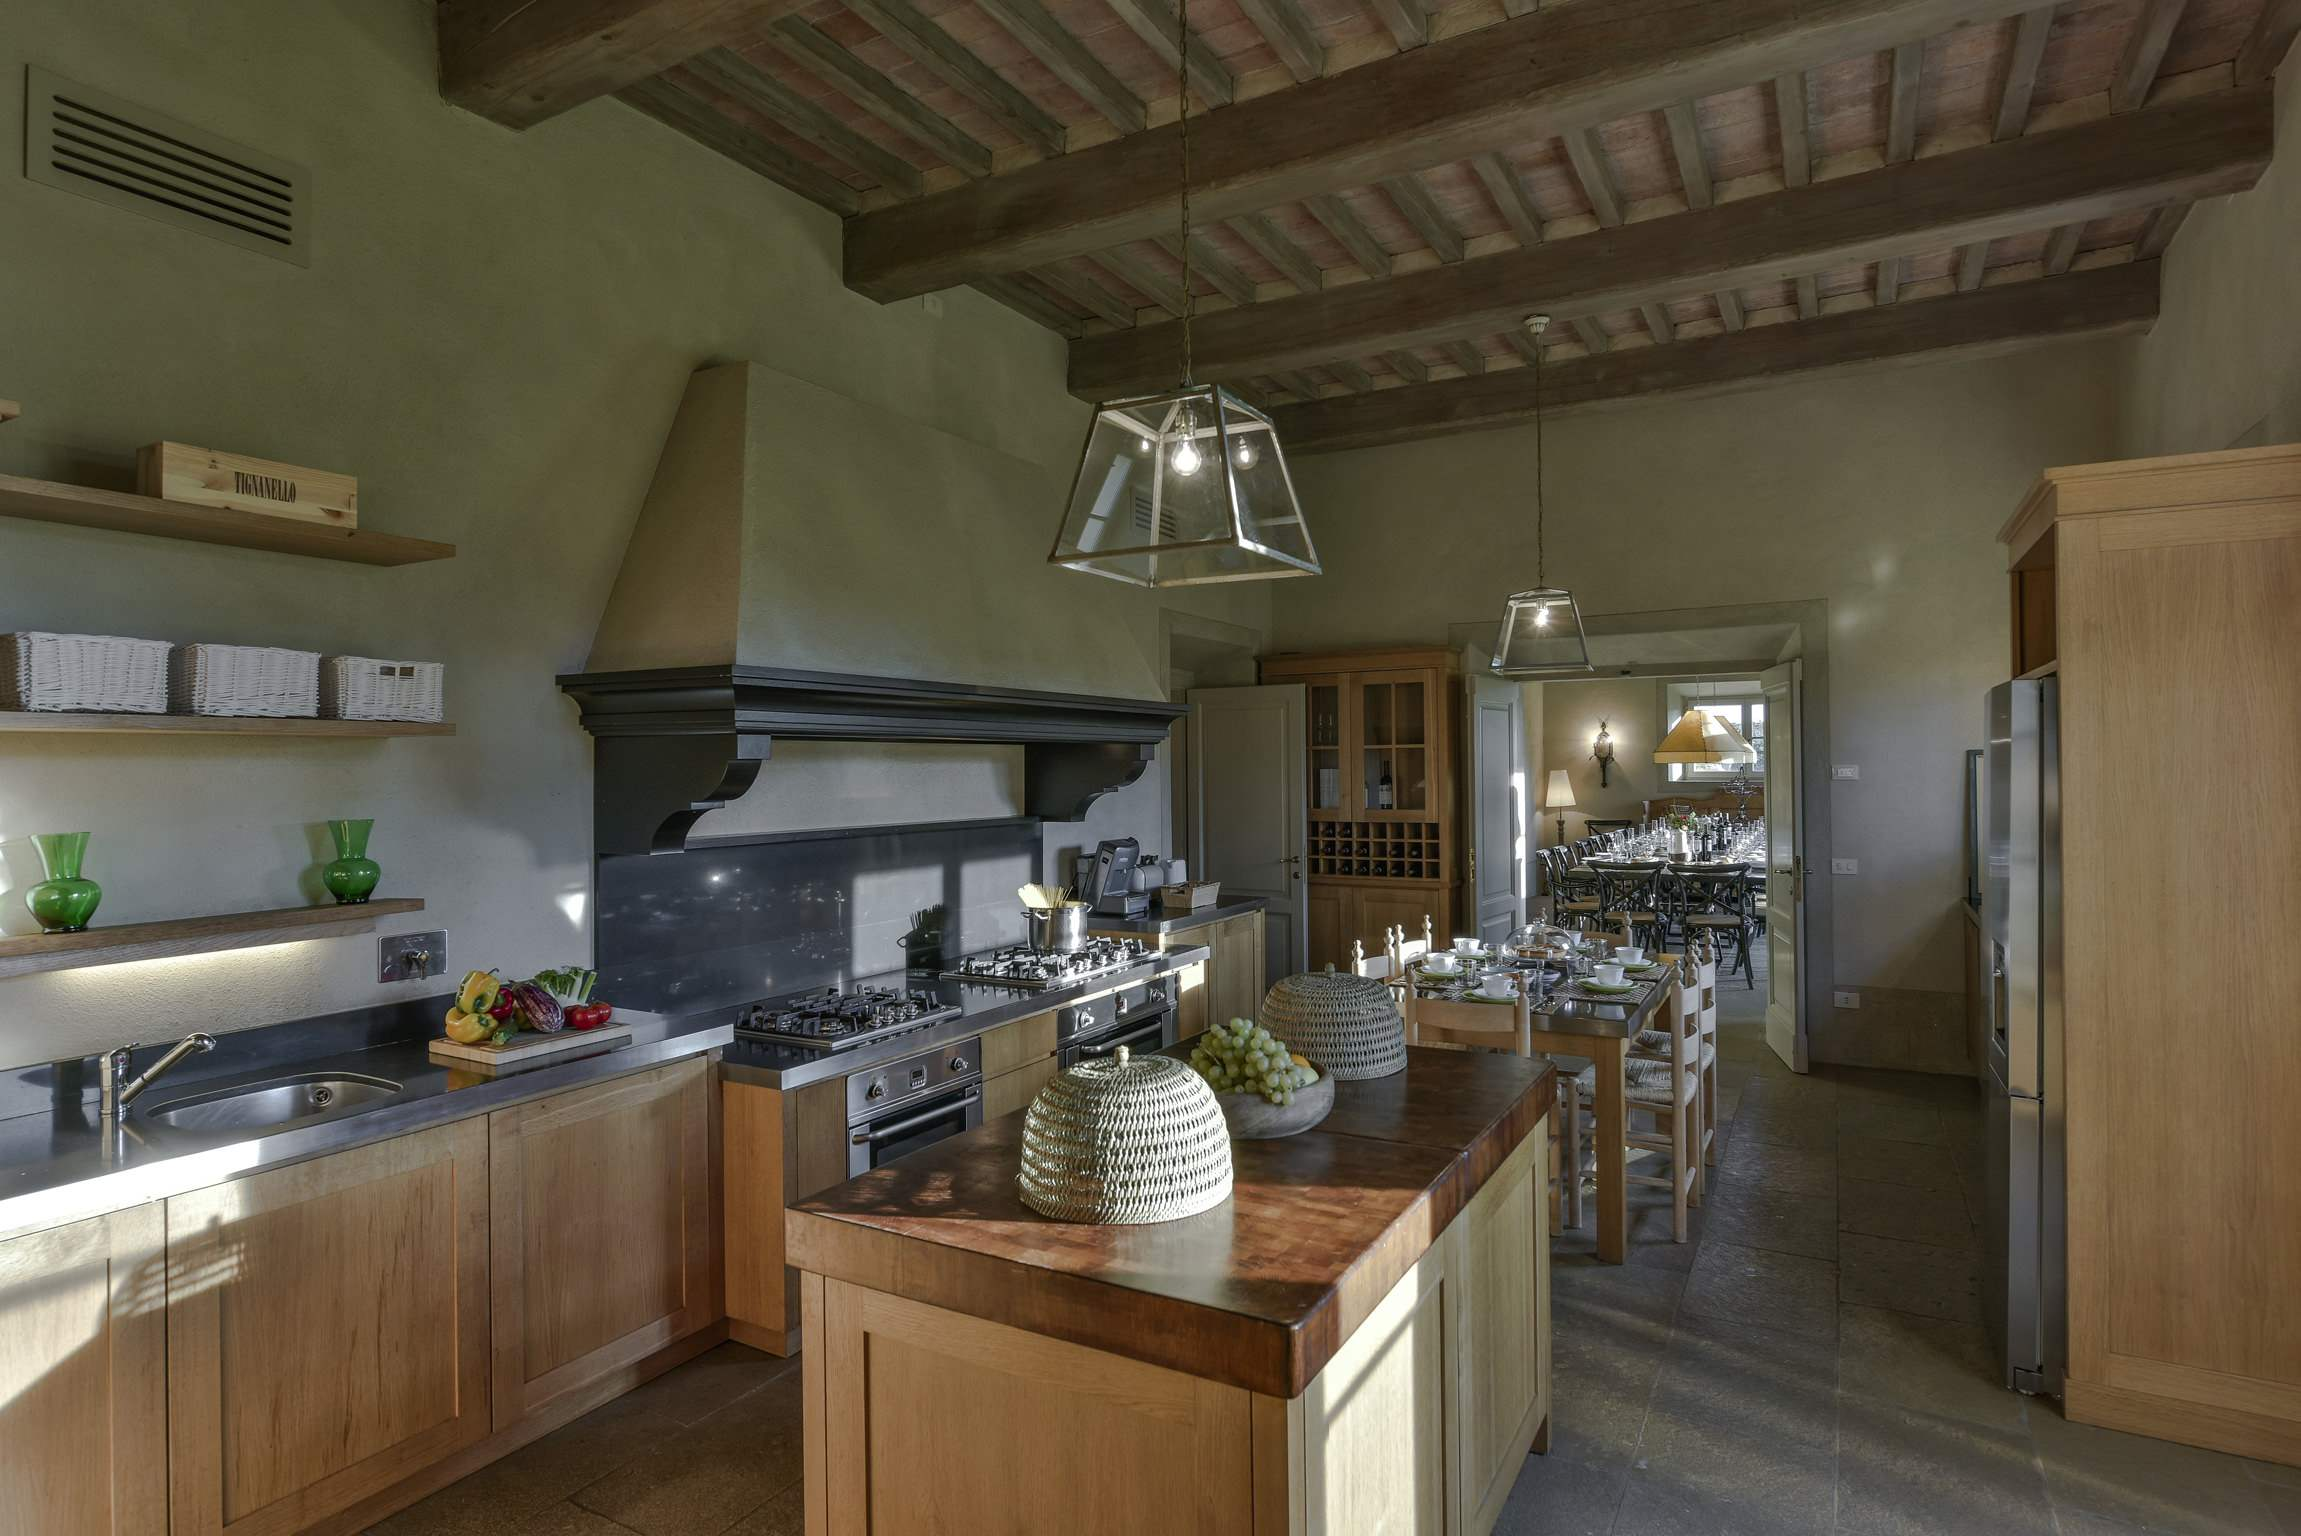 Villa Maremma 2, 9 bedroom villa in South Tuscany - Maremma, Tuscany Photo #15